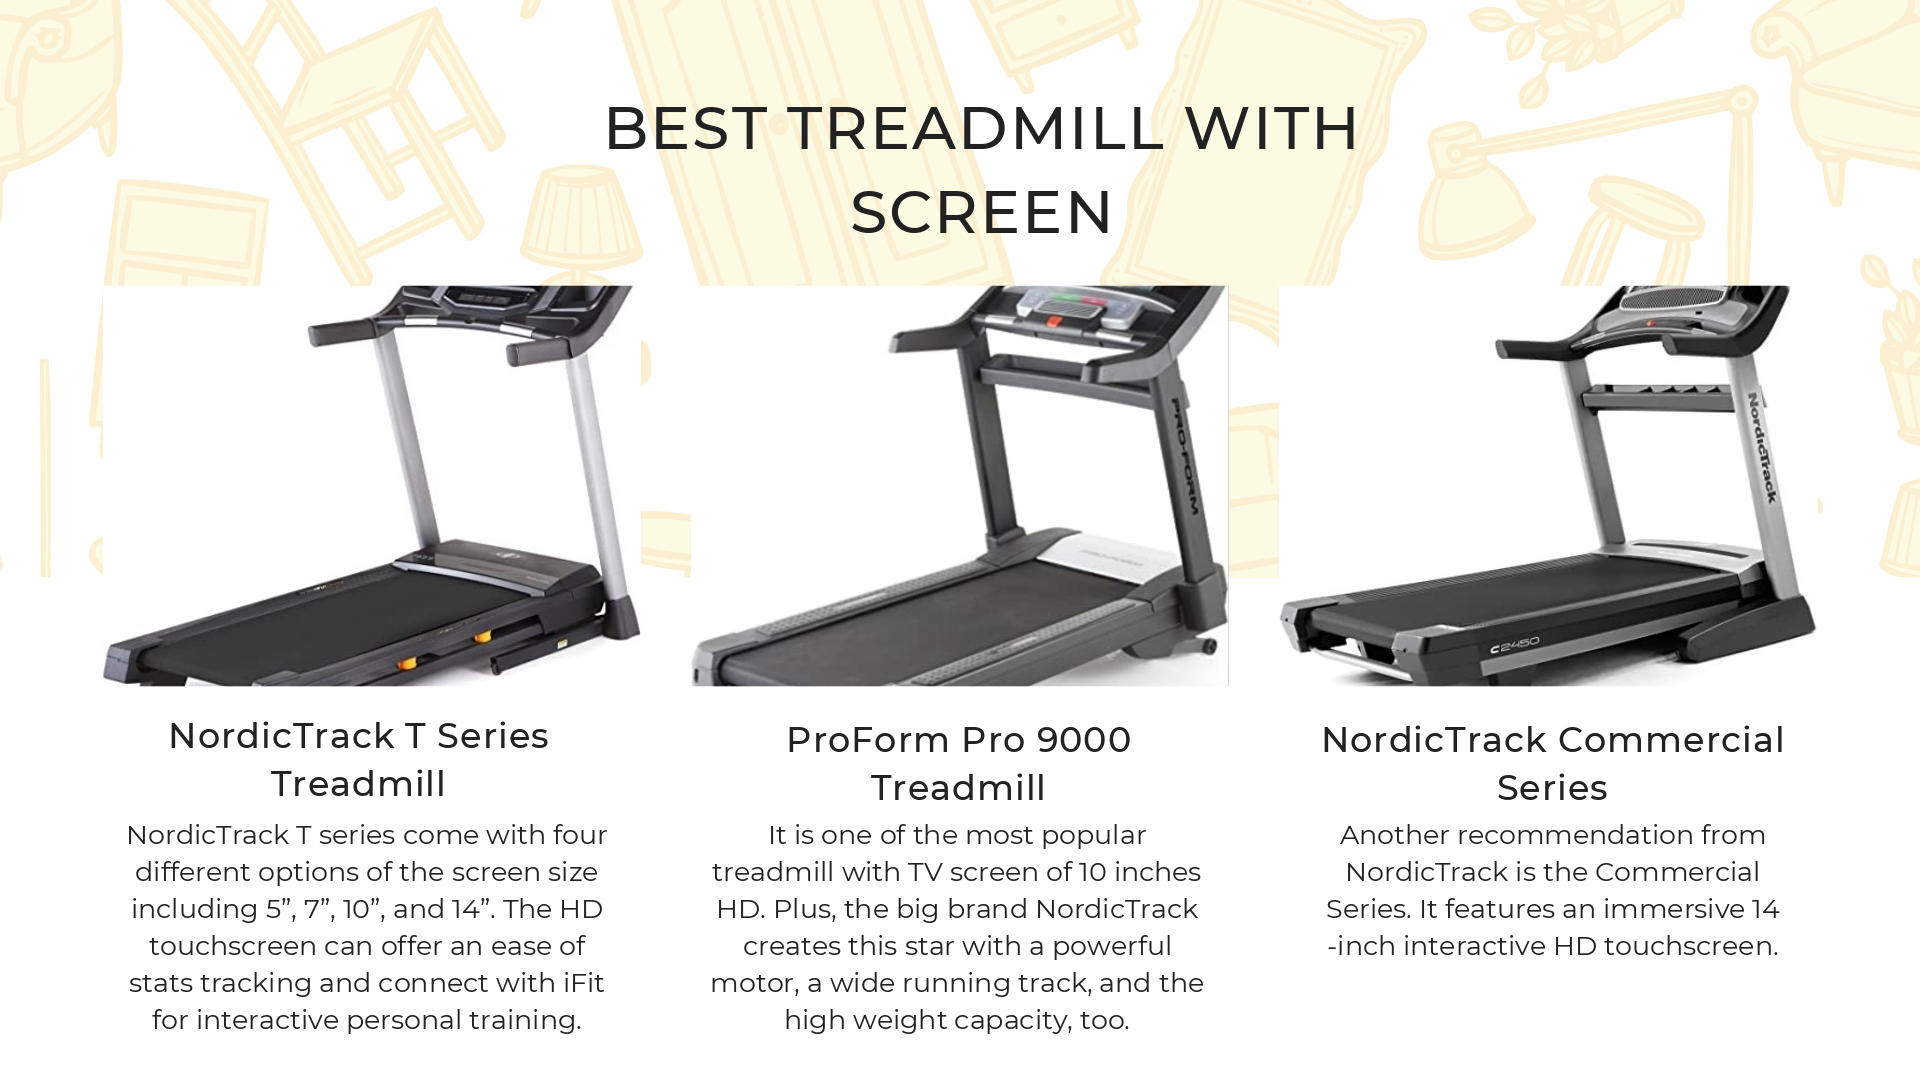 Best Treadmill with Screen 3 Top-rated Options for 2021